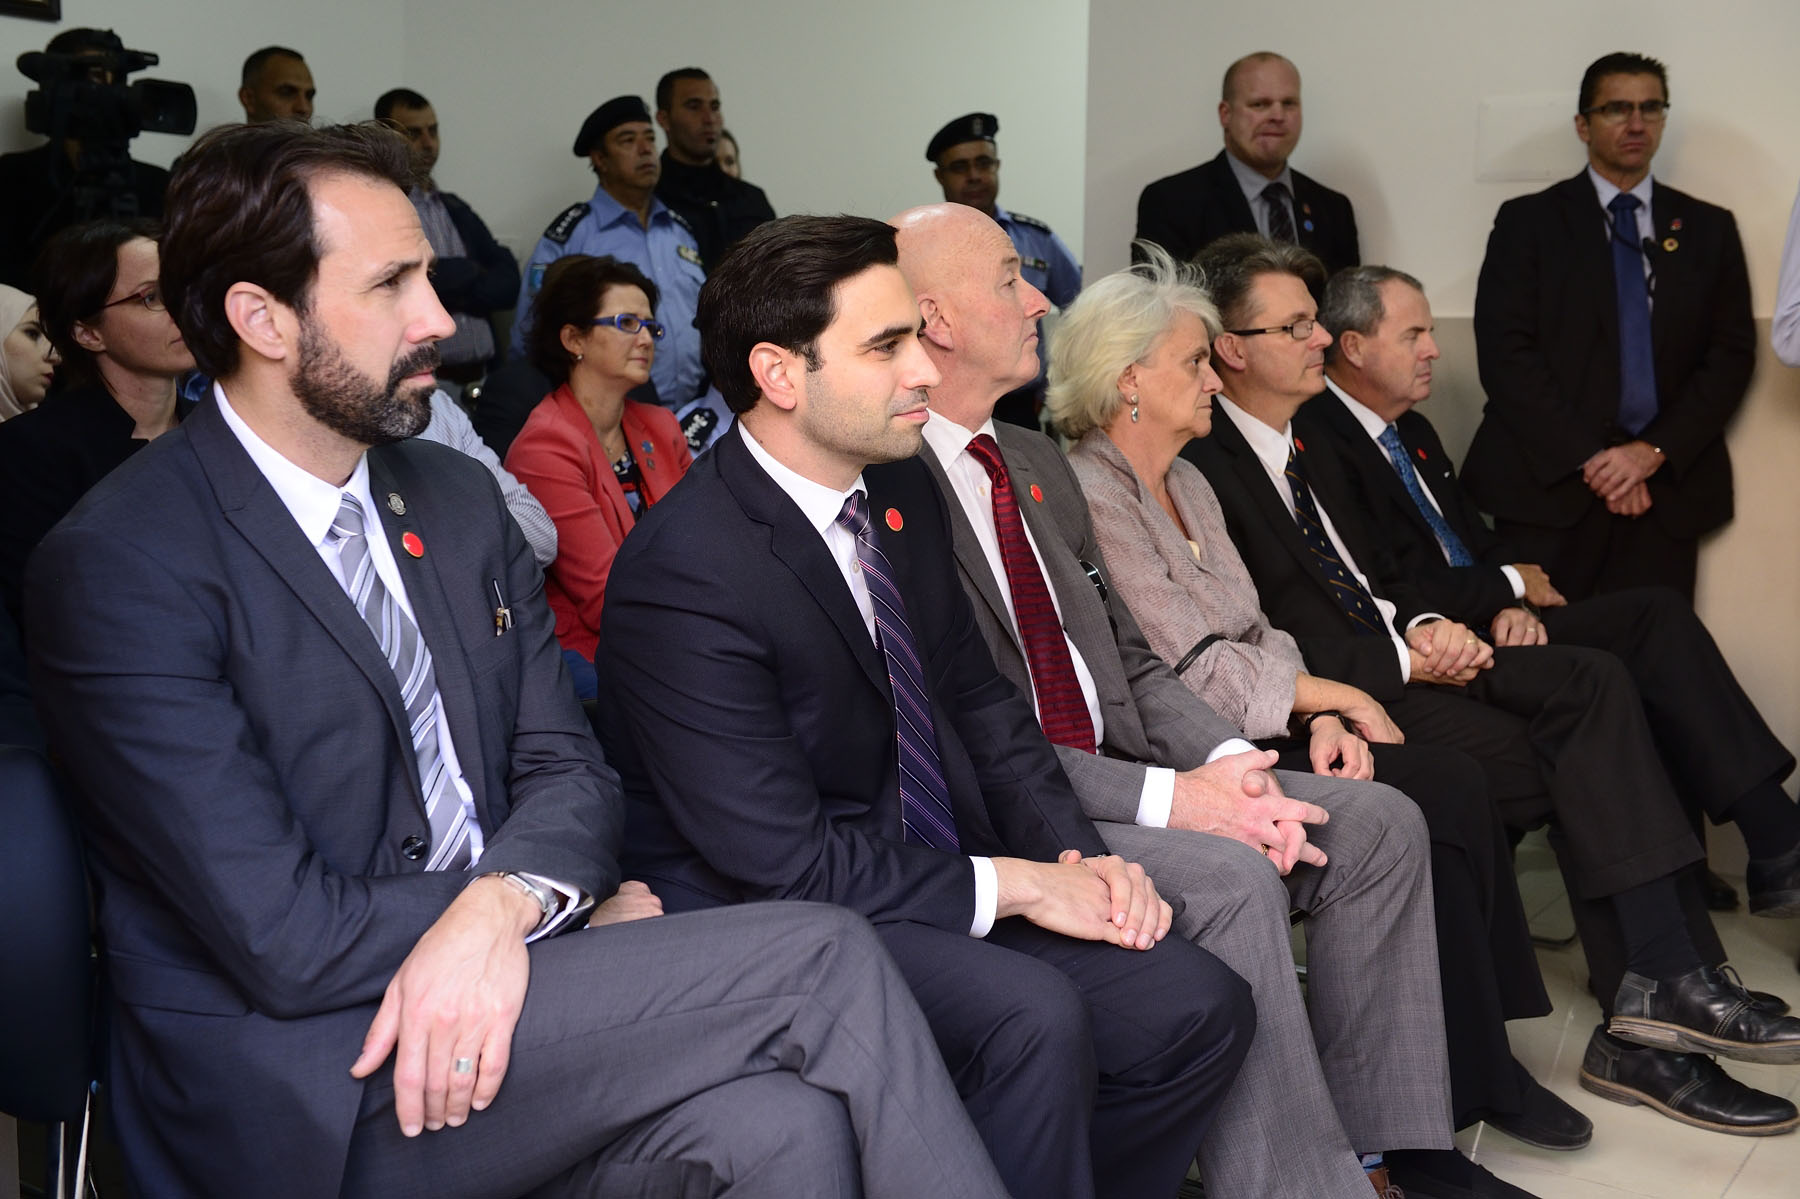 Canadian delegates also attended the ceremony.